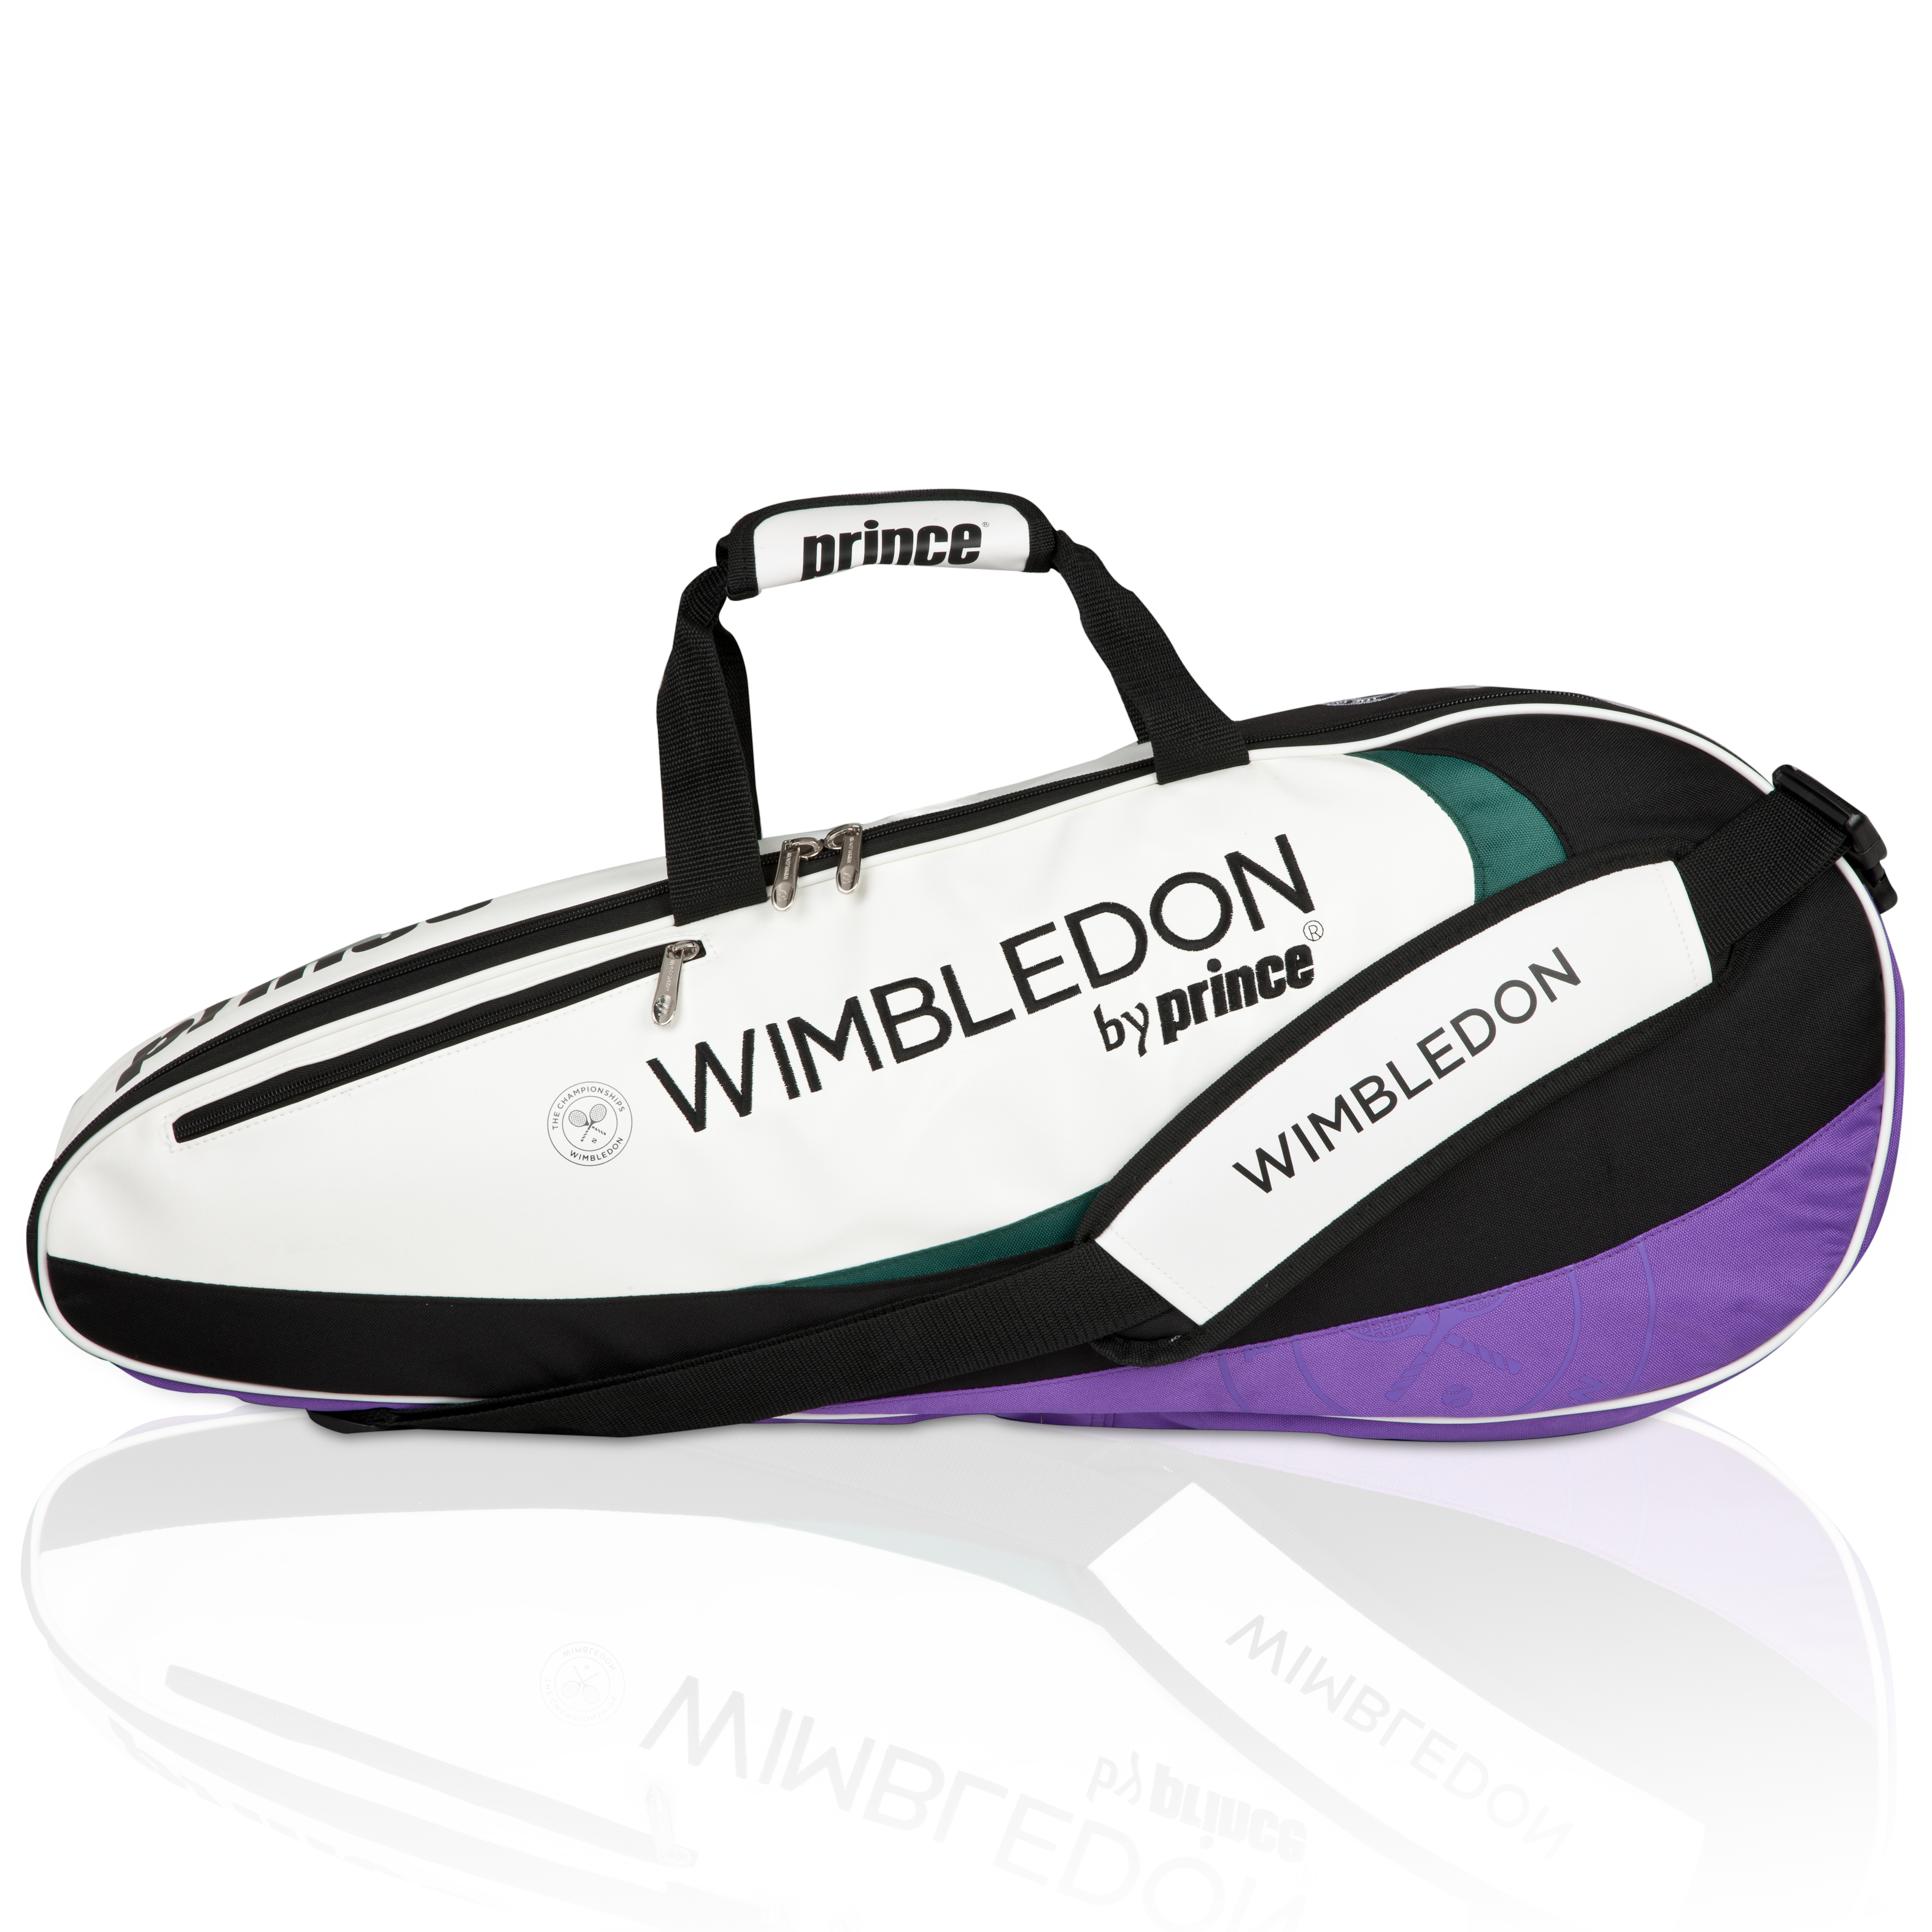 Wimbledon By Prince Top Seed Collection 3 Pack Racket Bag